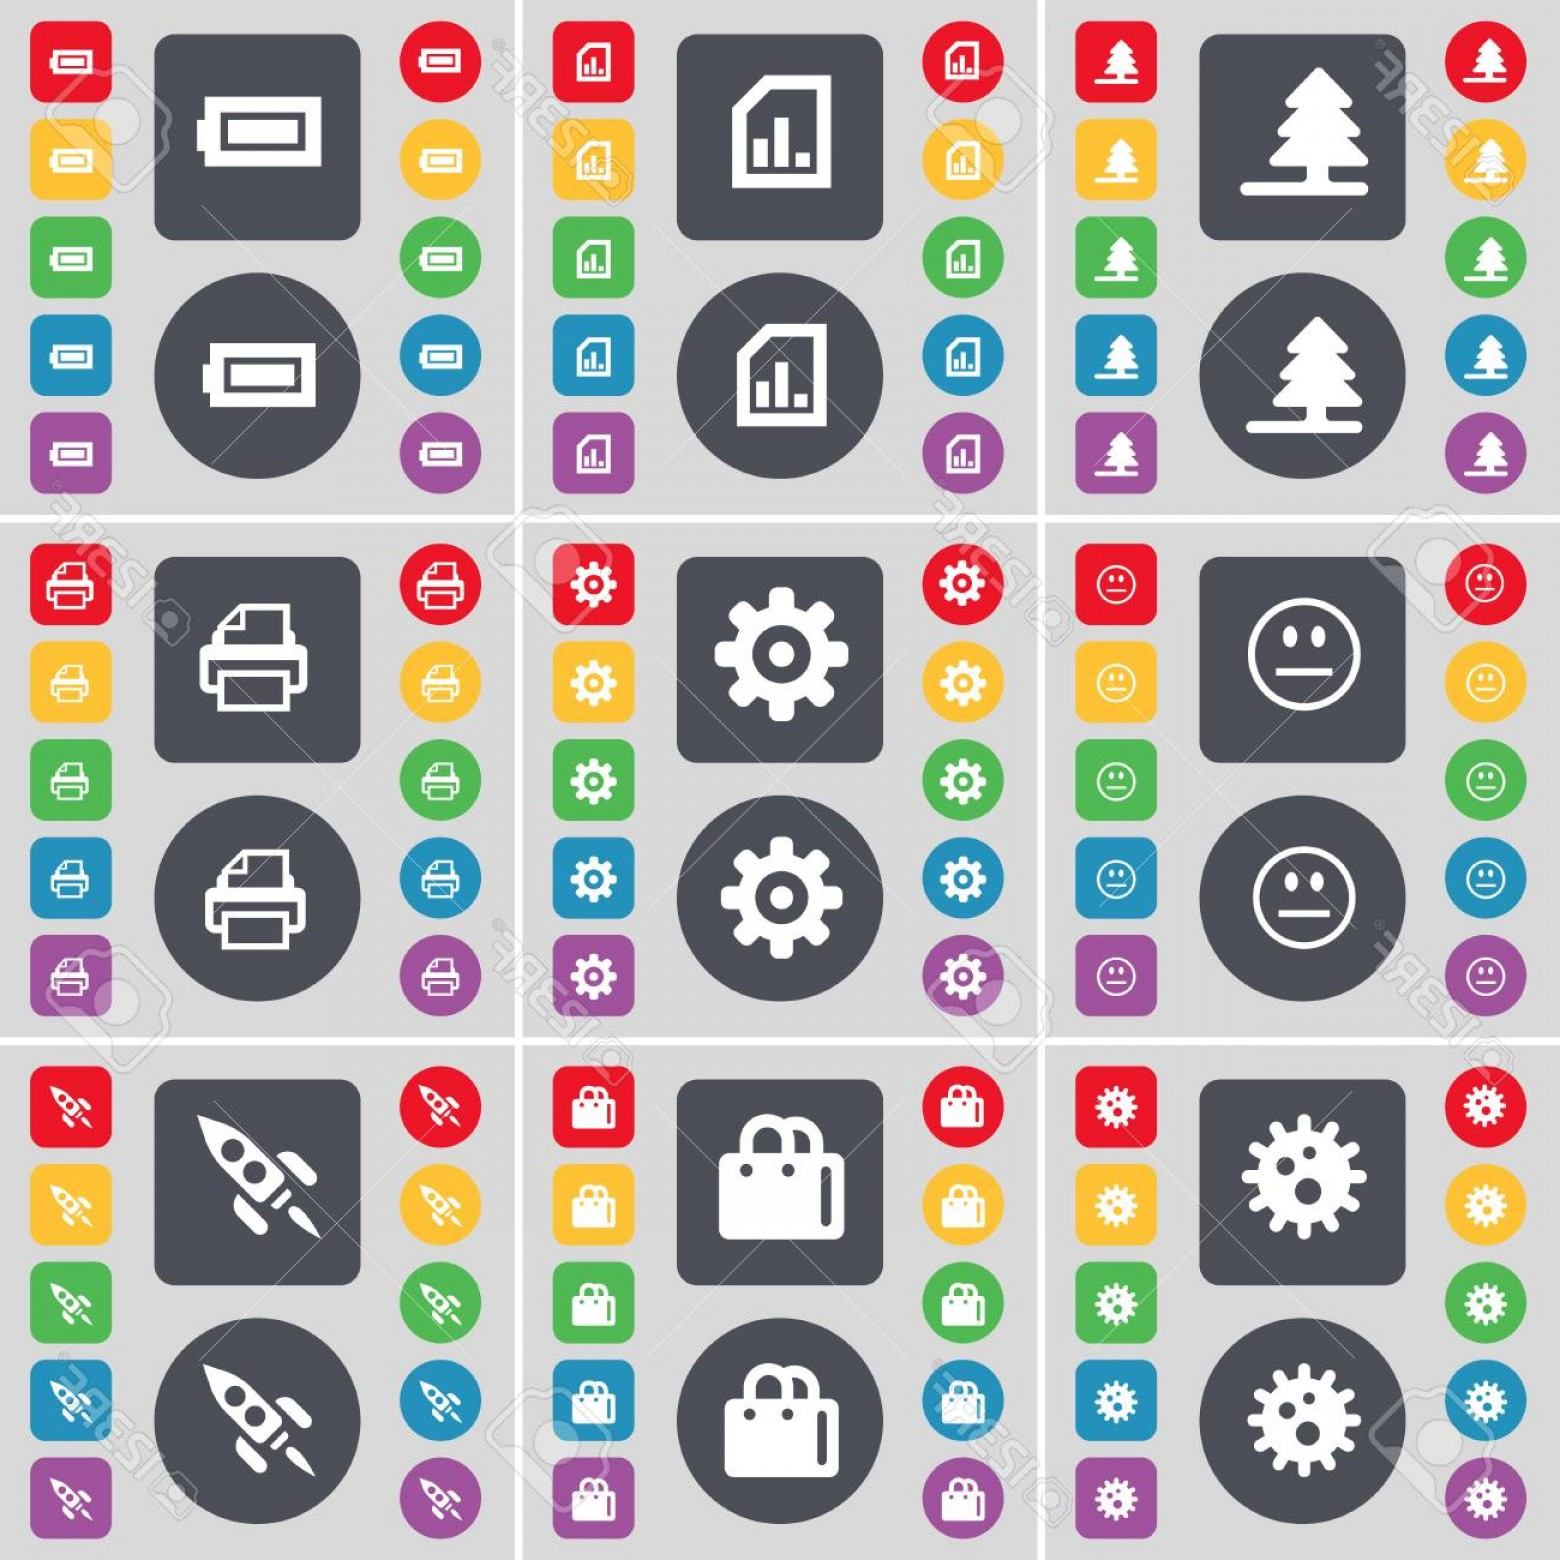 Gear Vector Icons Large: Photostock Illustration Firtree Diagram File Battery Smile Gear Printer Gear Shopping Bag Rocket Icon Symbol A Large Set Of